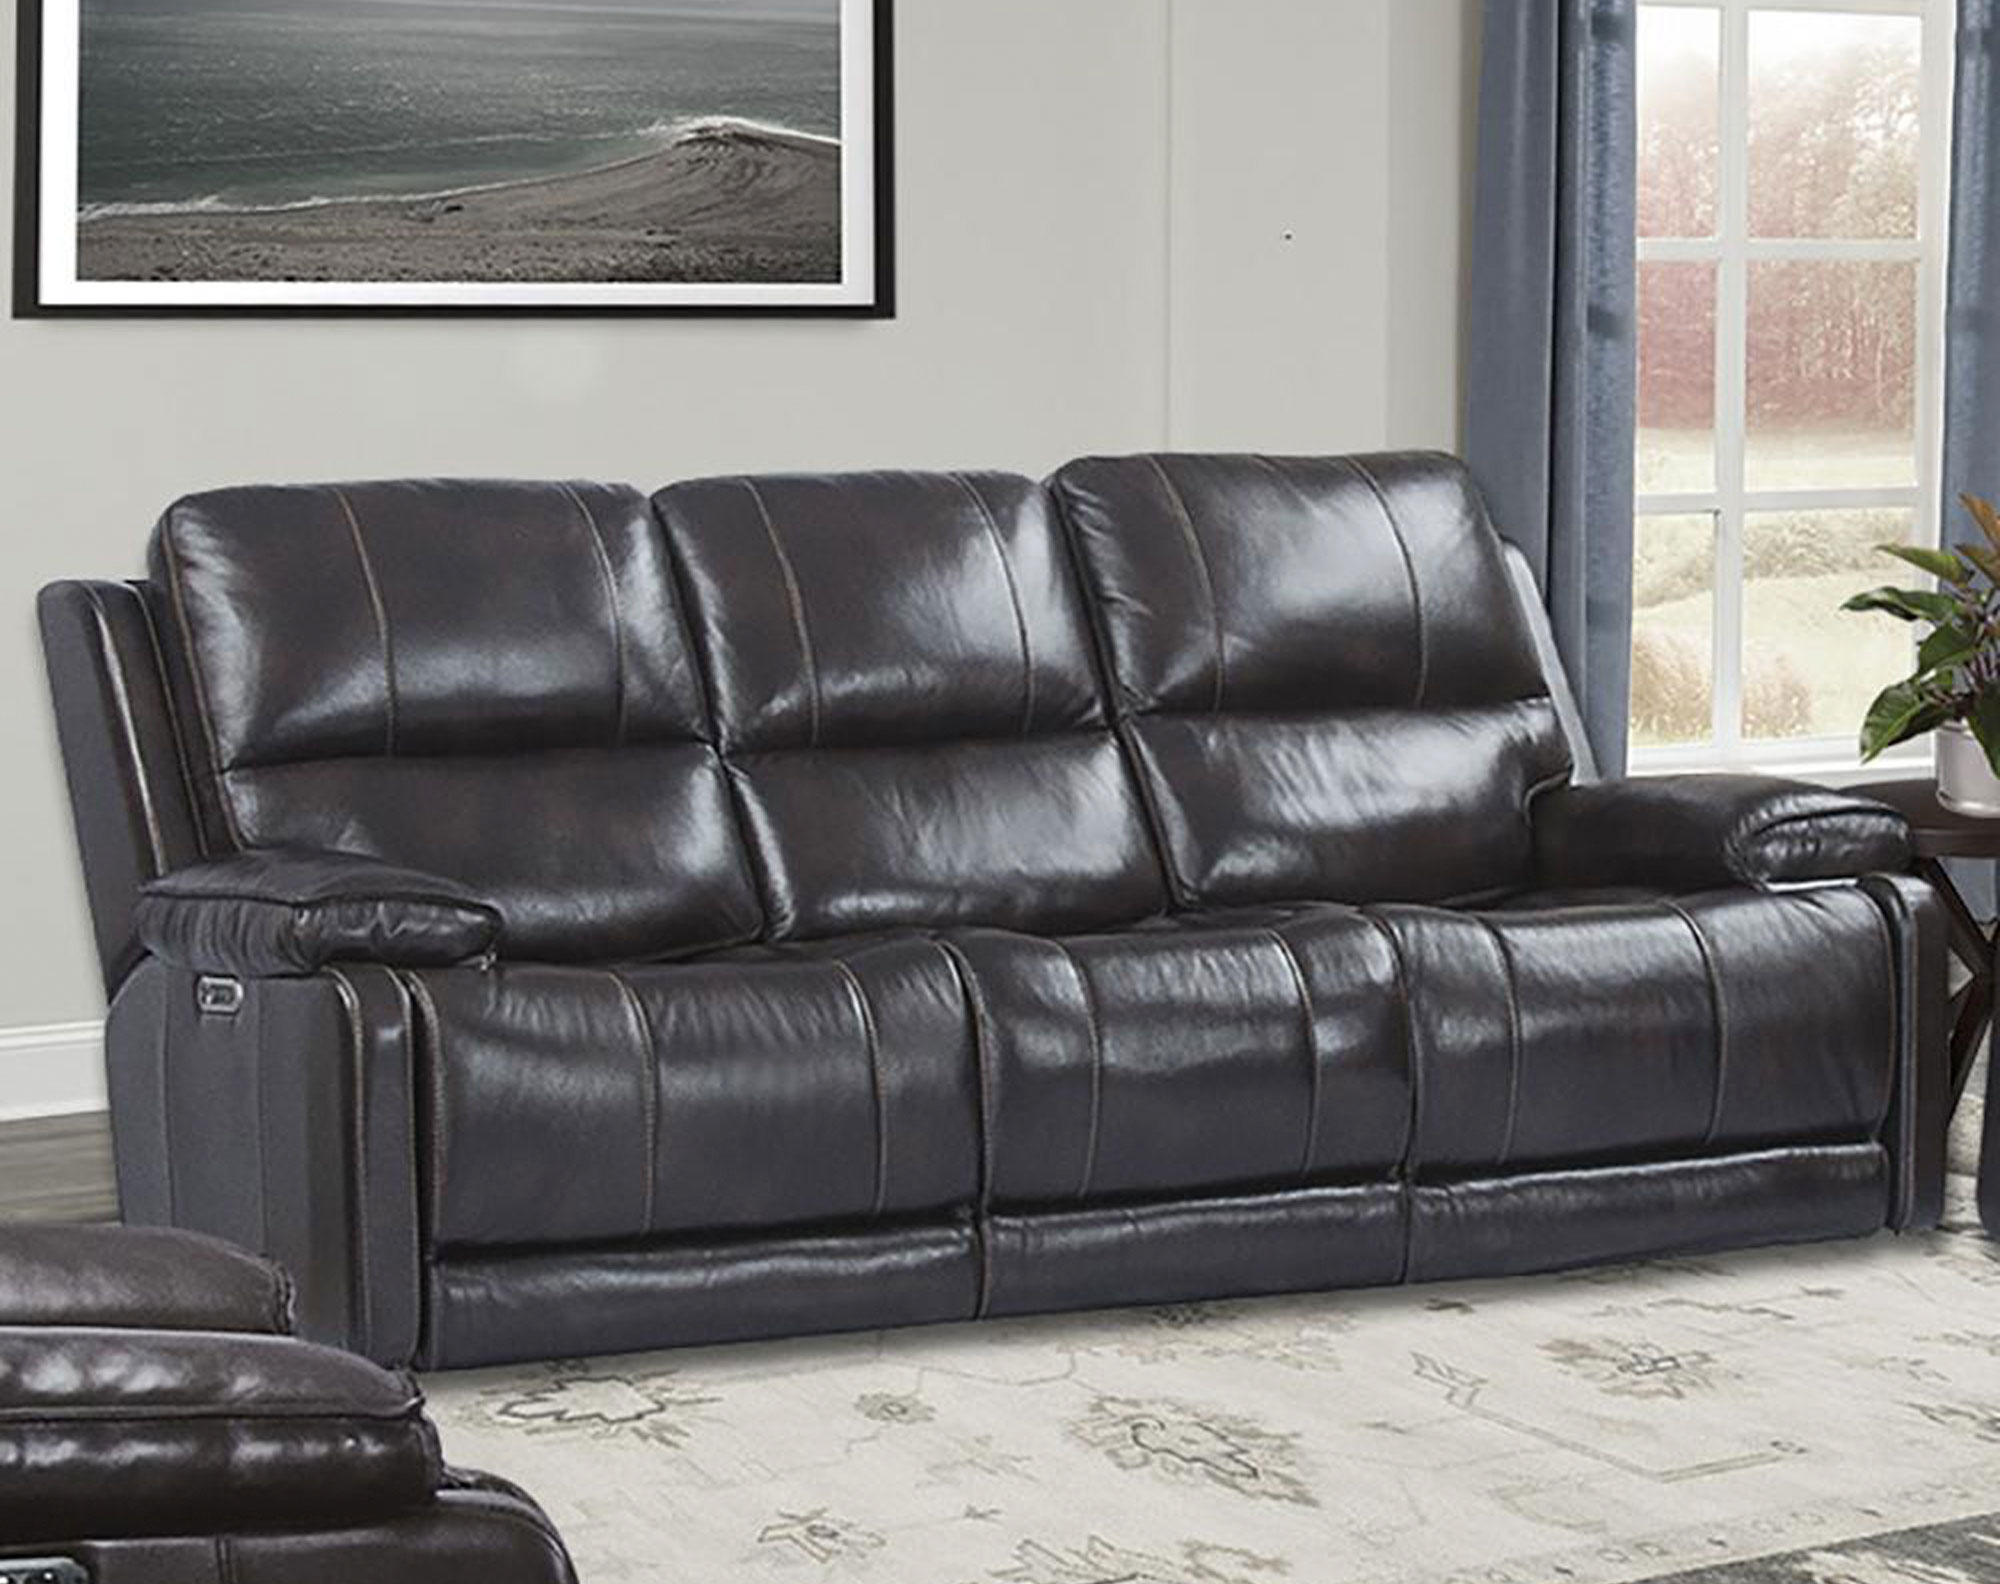 Wondrous Thompson Havana Leather Power Reclining Sofa Sofas And Machost Co Dining Chair Design Ideas Machostcouk